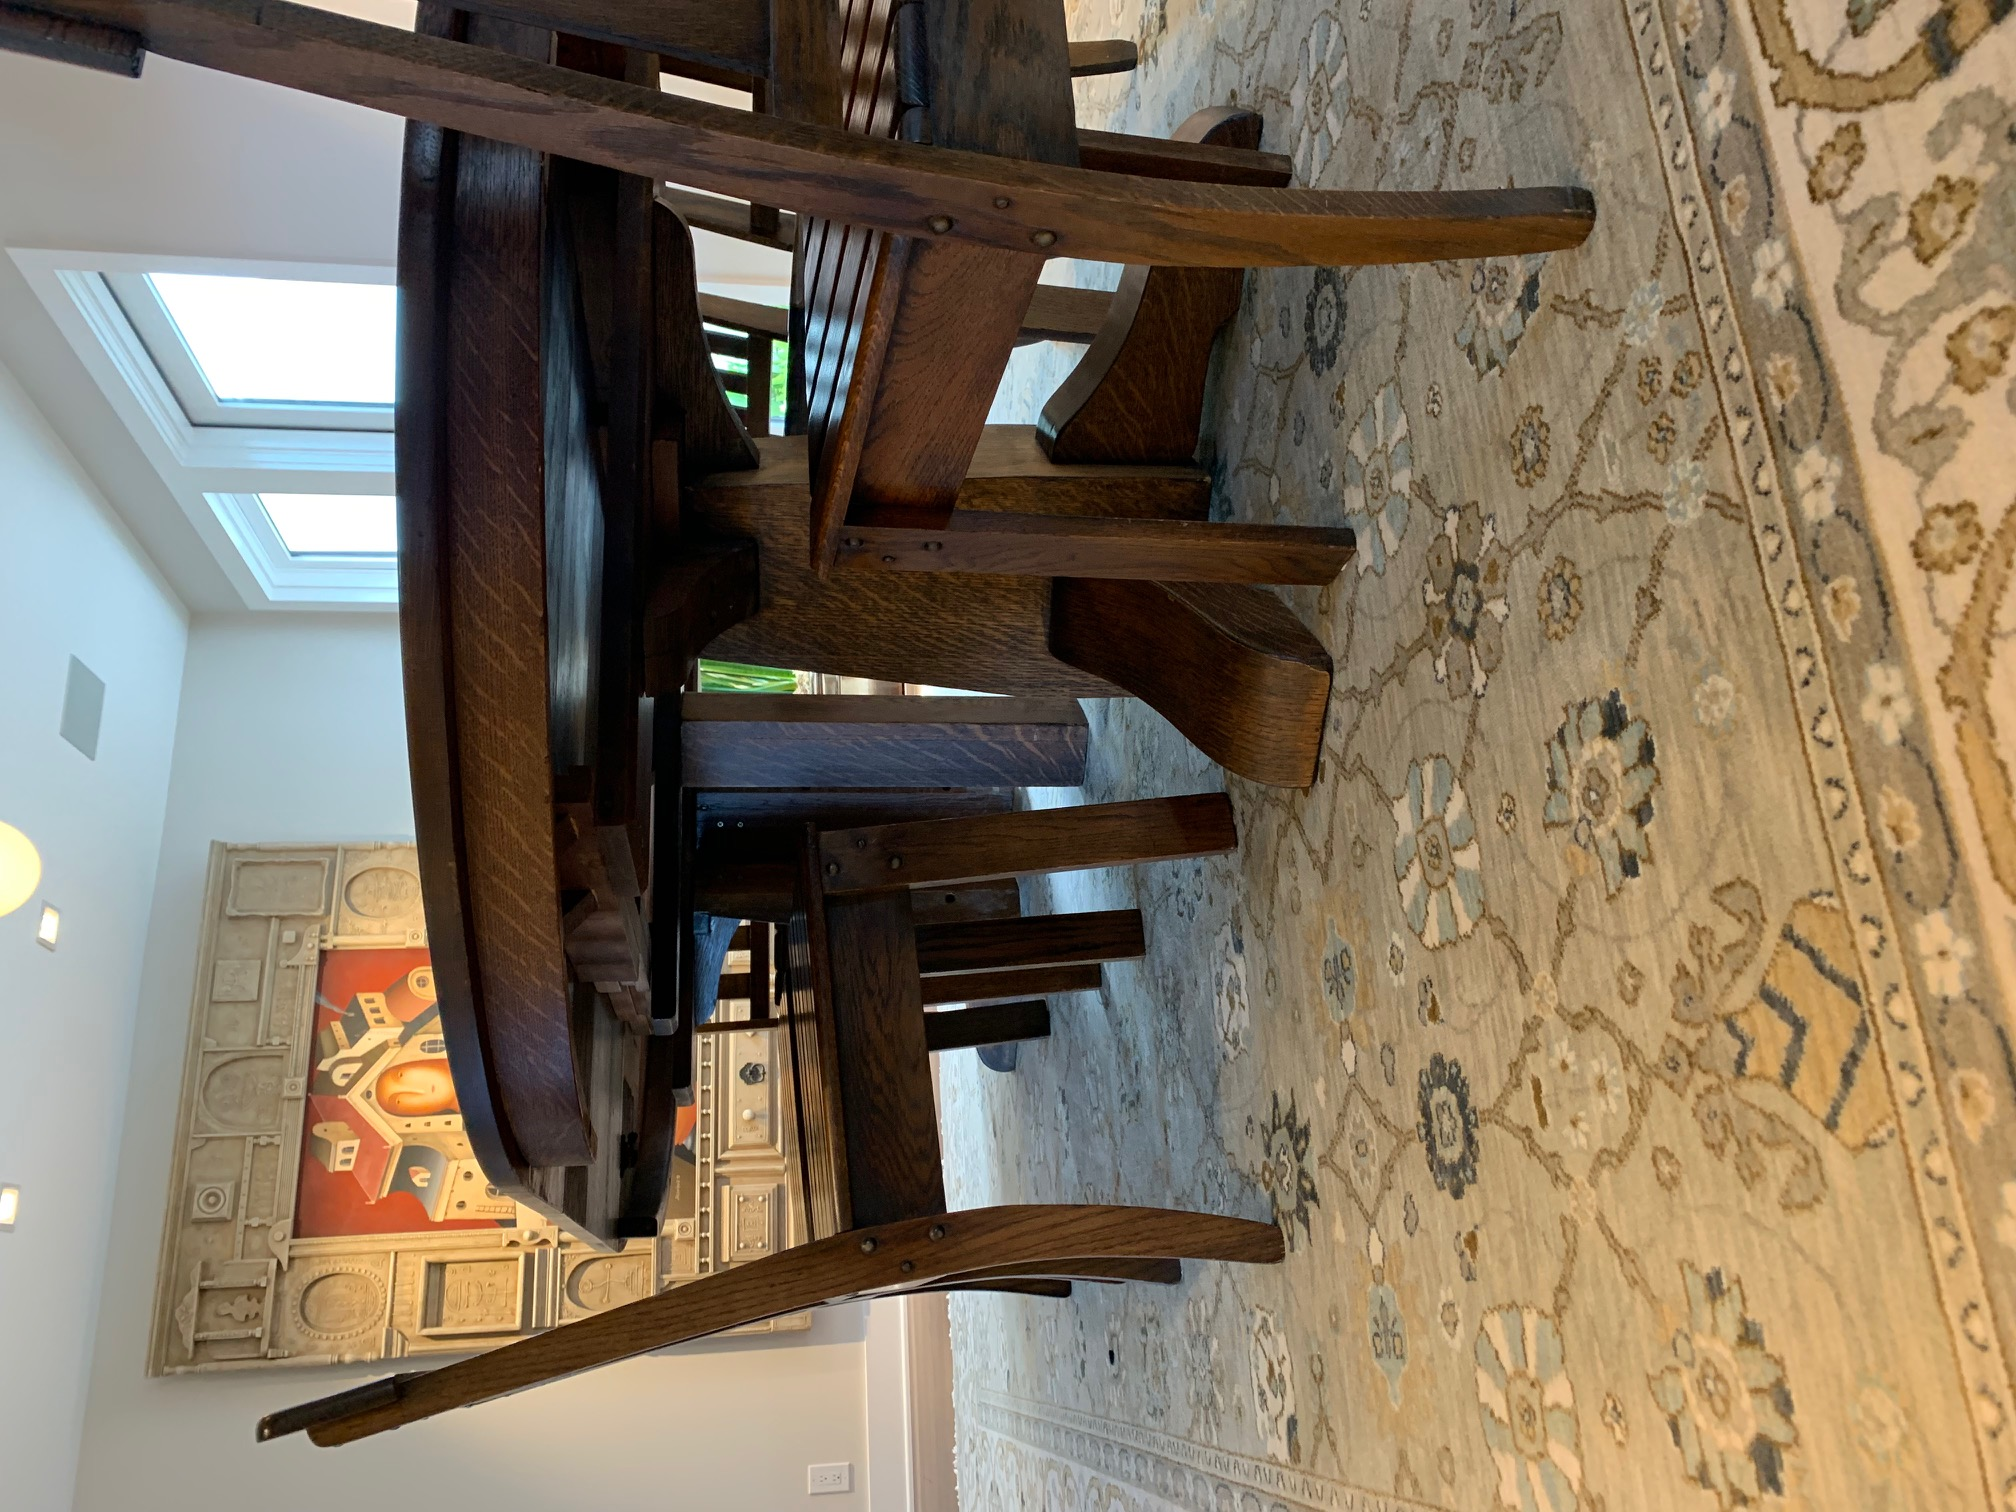 stickley dining room table | Gustav Stickley Dining Room Table w/ Four Leaves and Six ...